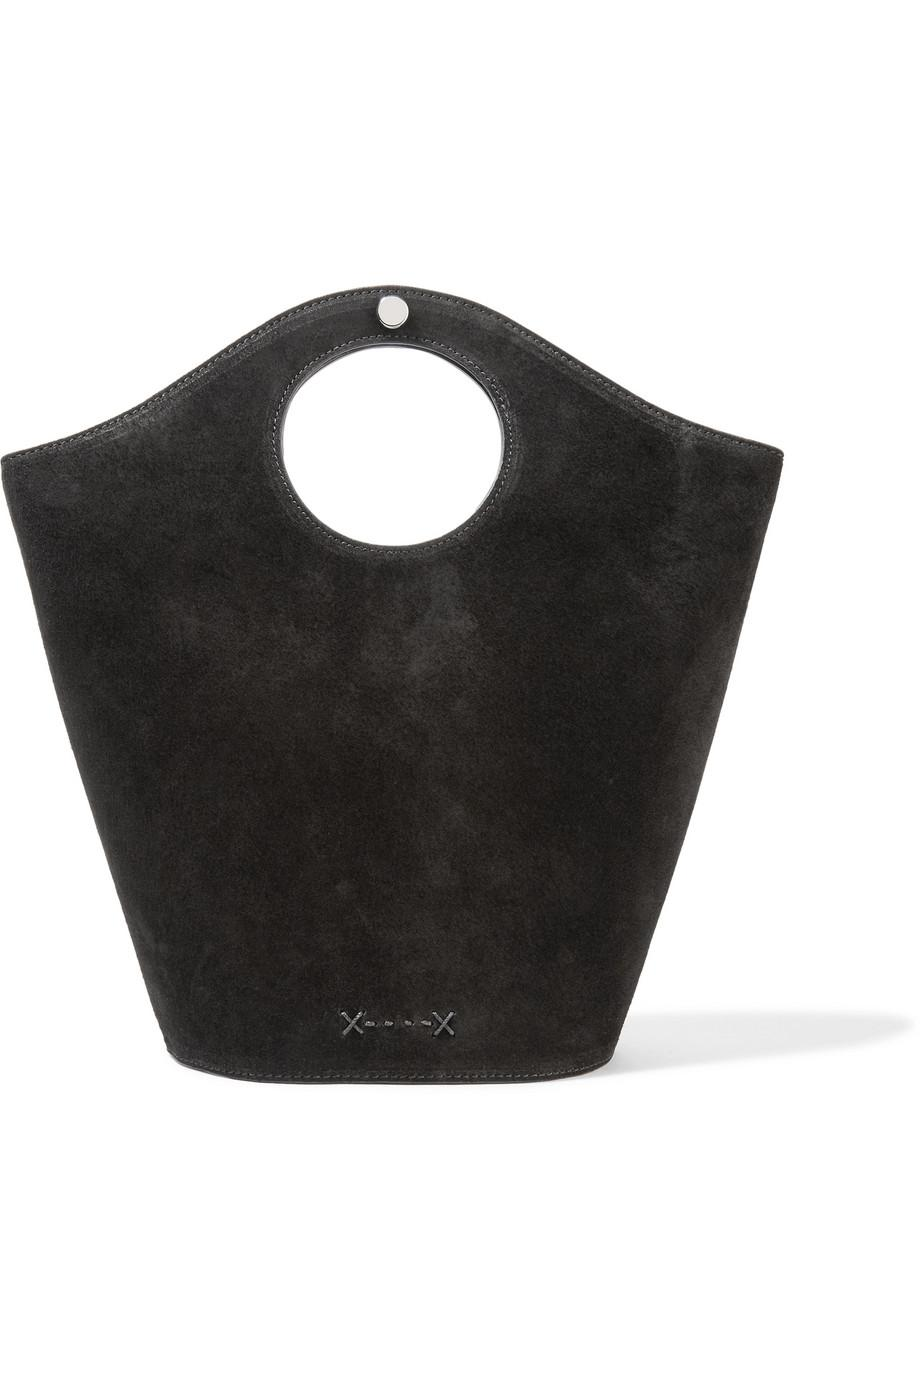 Market Small Leather And Suede Tote - Black Elizabeth & James pZpfFsFLO